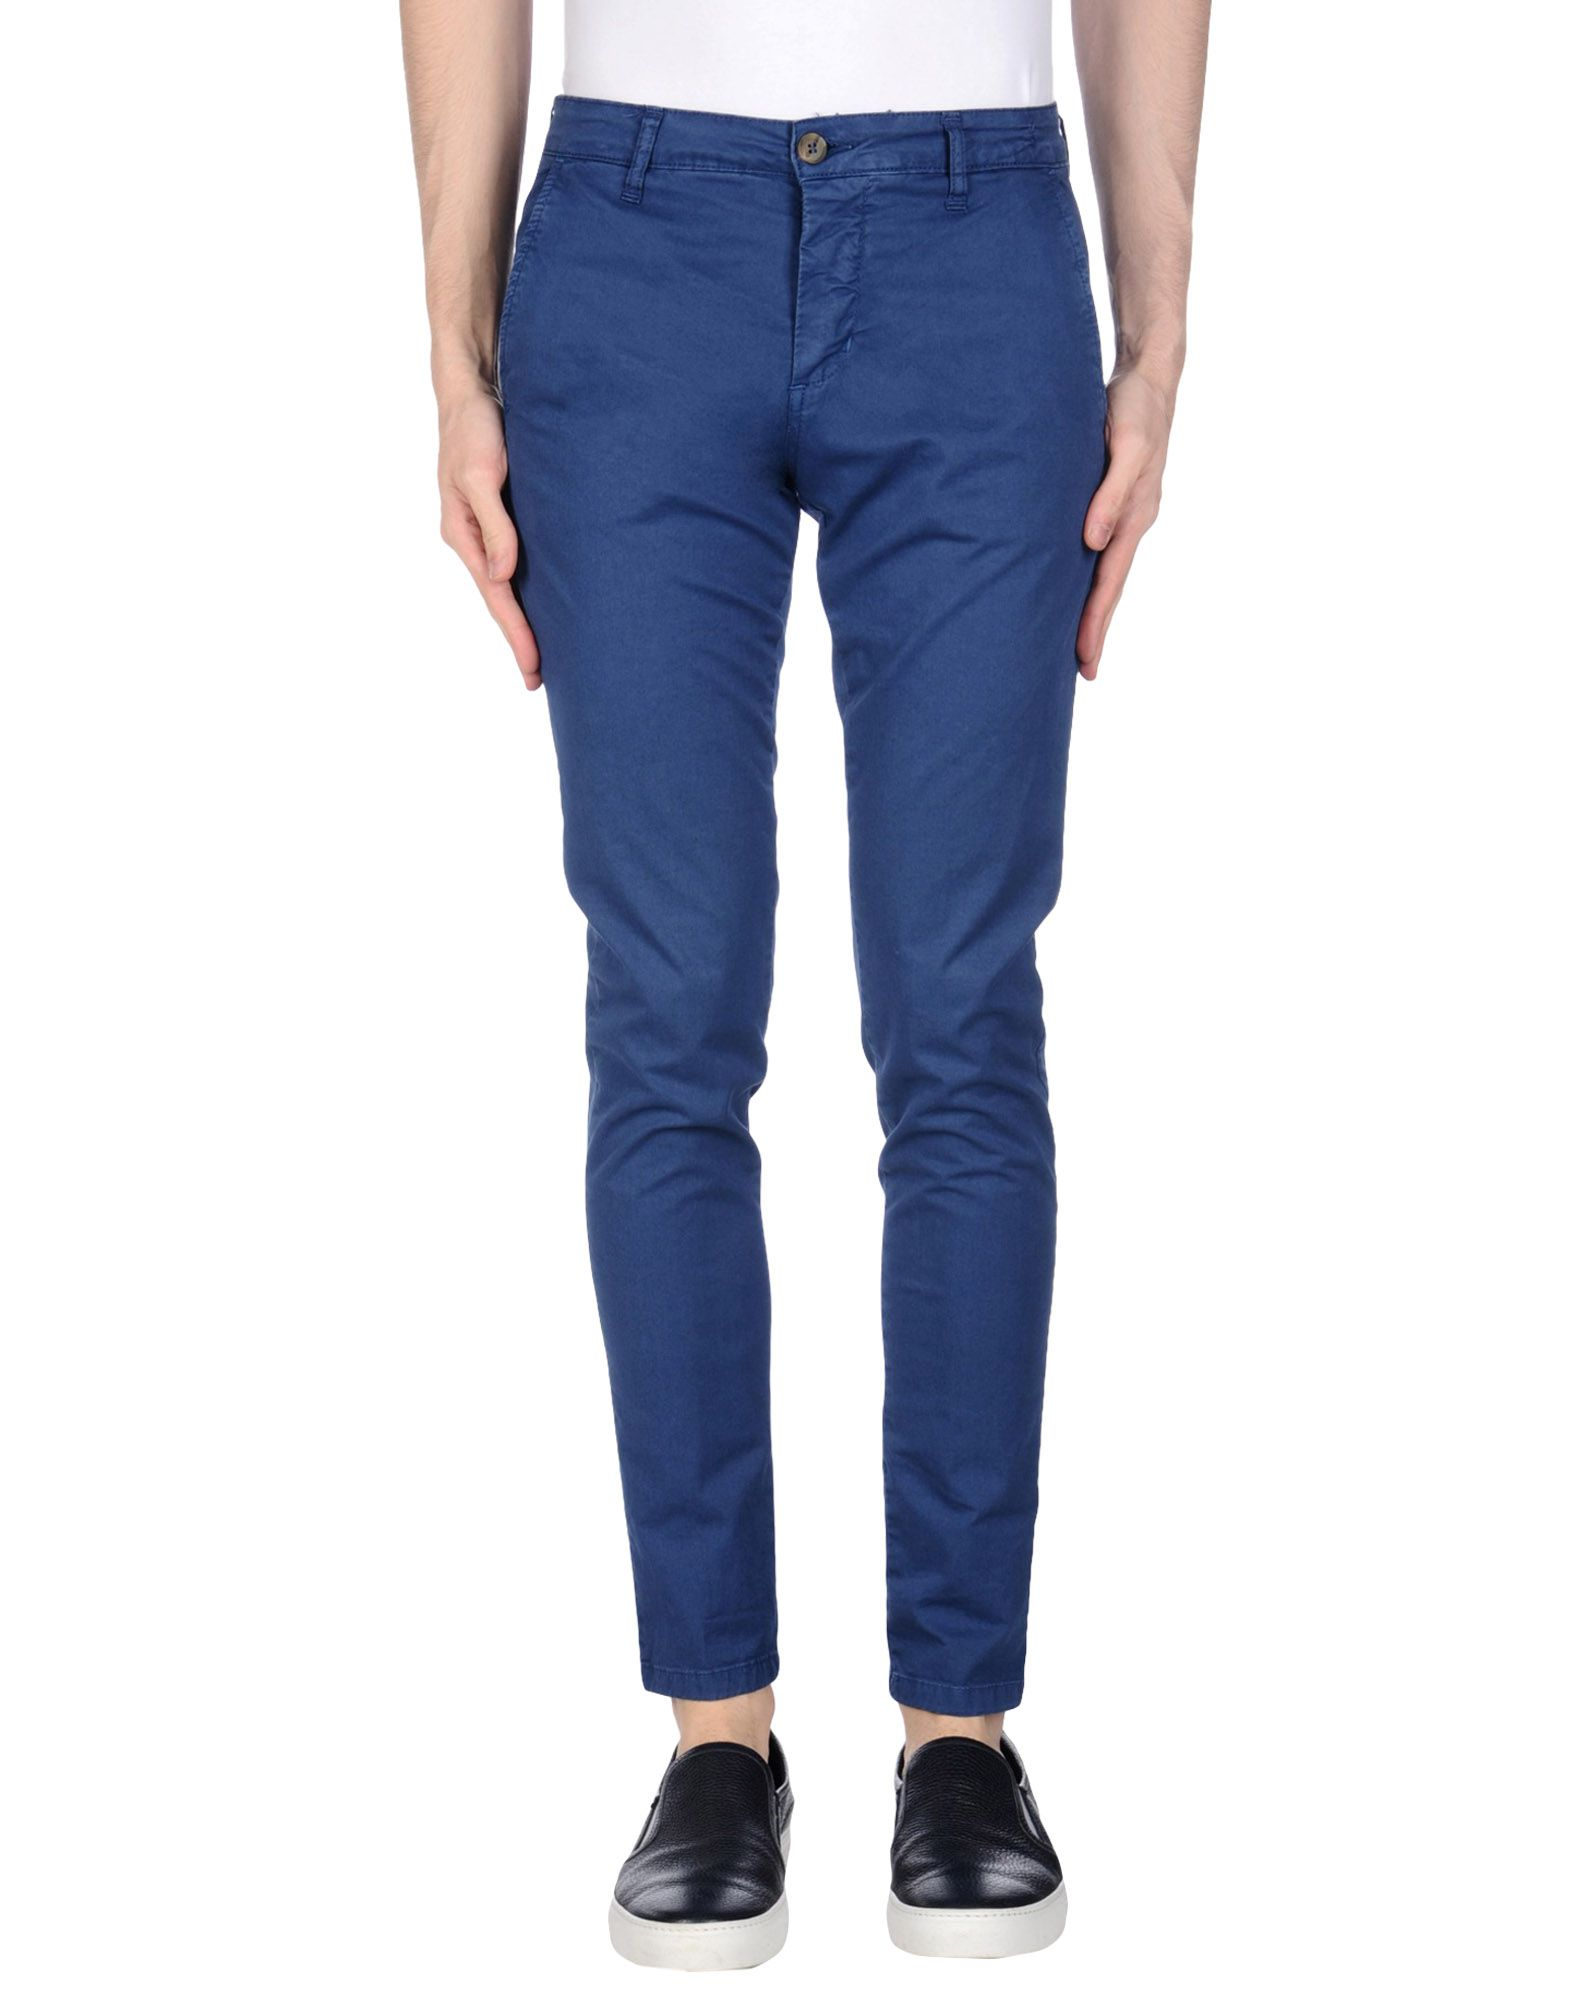 City Look Casual Pants